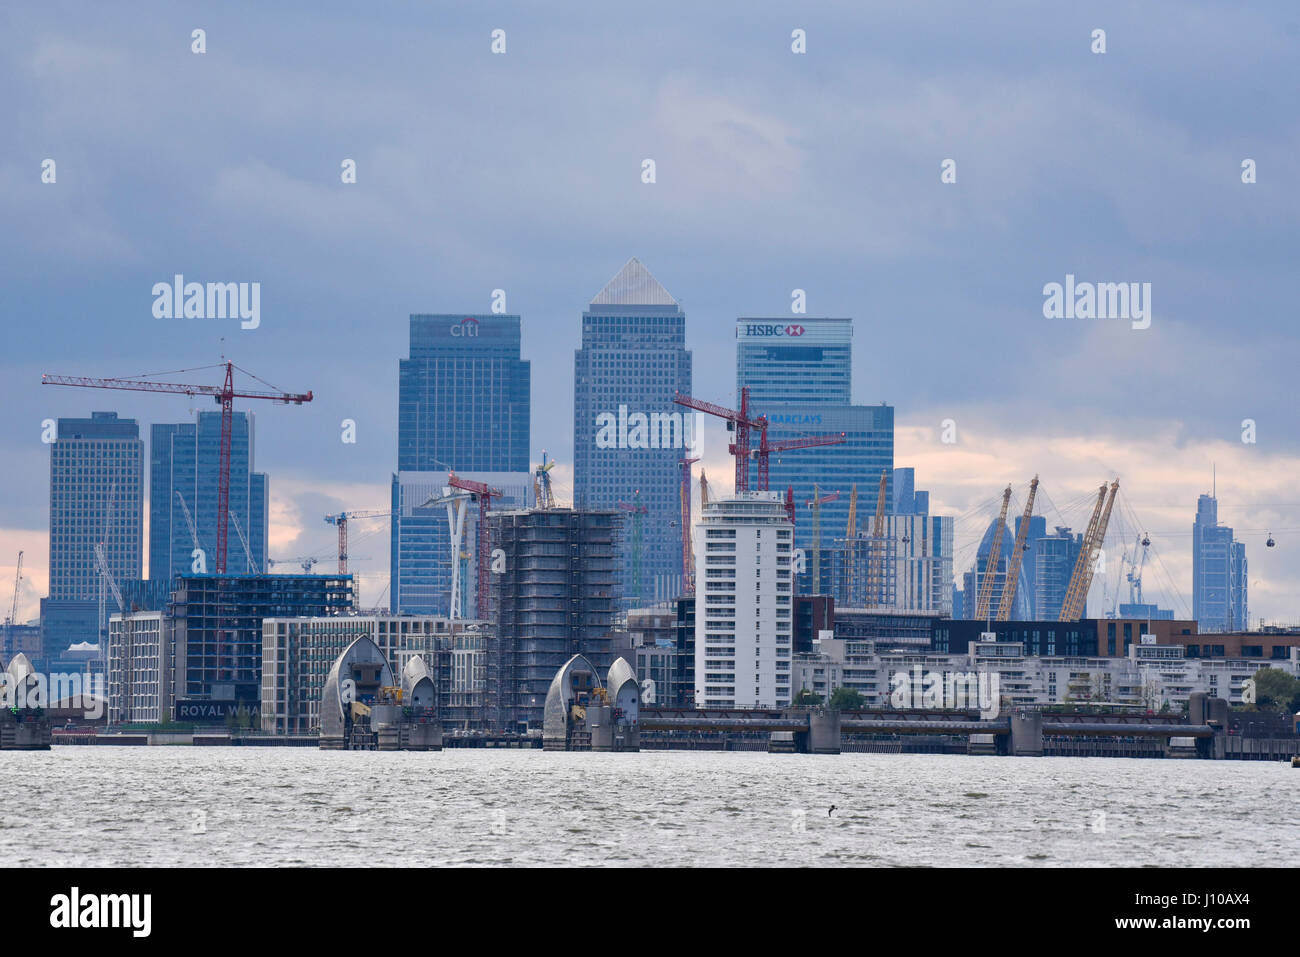 London, UK. 16th Apr, 2017. The distant skyscrapers of Canary Wharf are seen, home to the headquarters of many financial - Stock Image